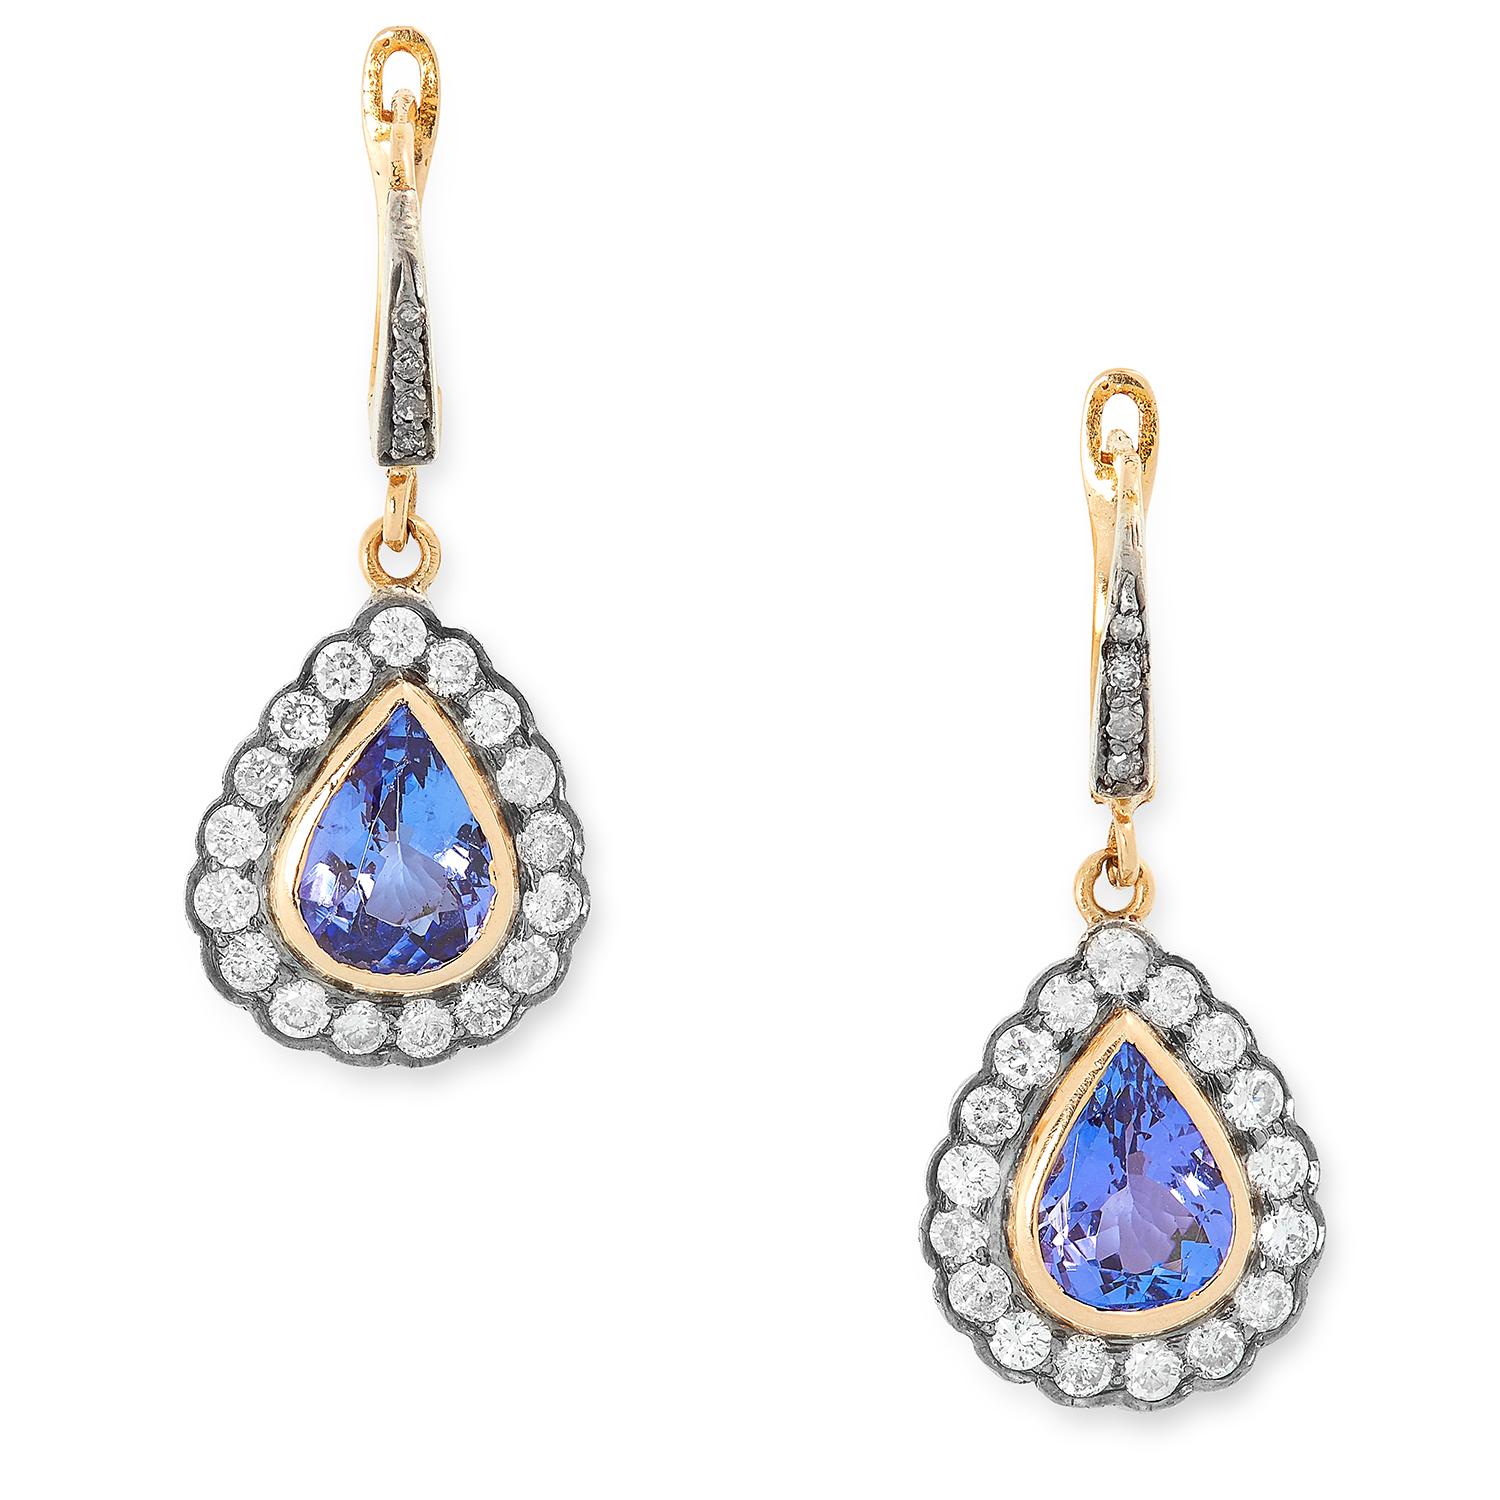 TANZANITE AND DIAMOND CLUSTER EARRINGS each set with a pear cut tanzanite in a cluster of round